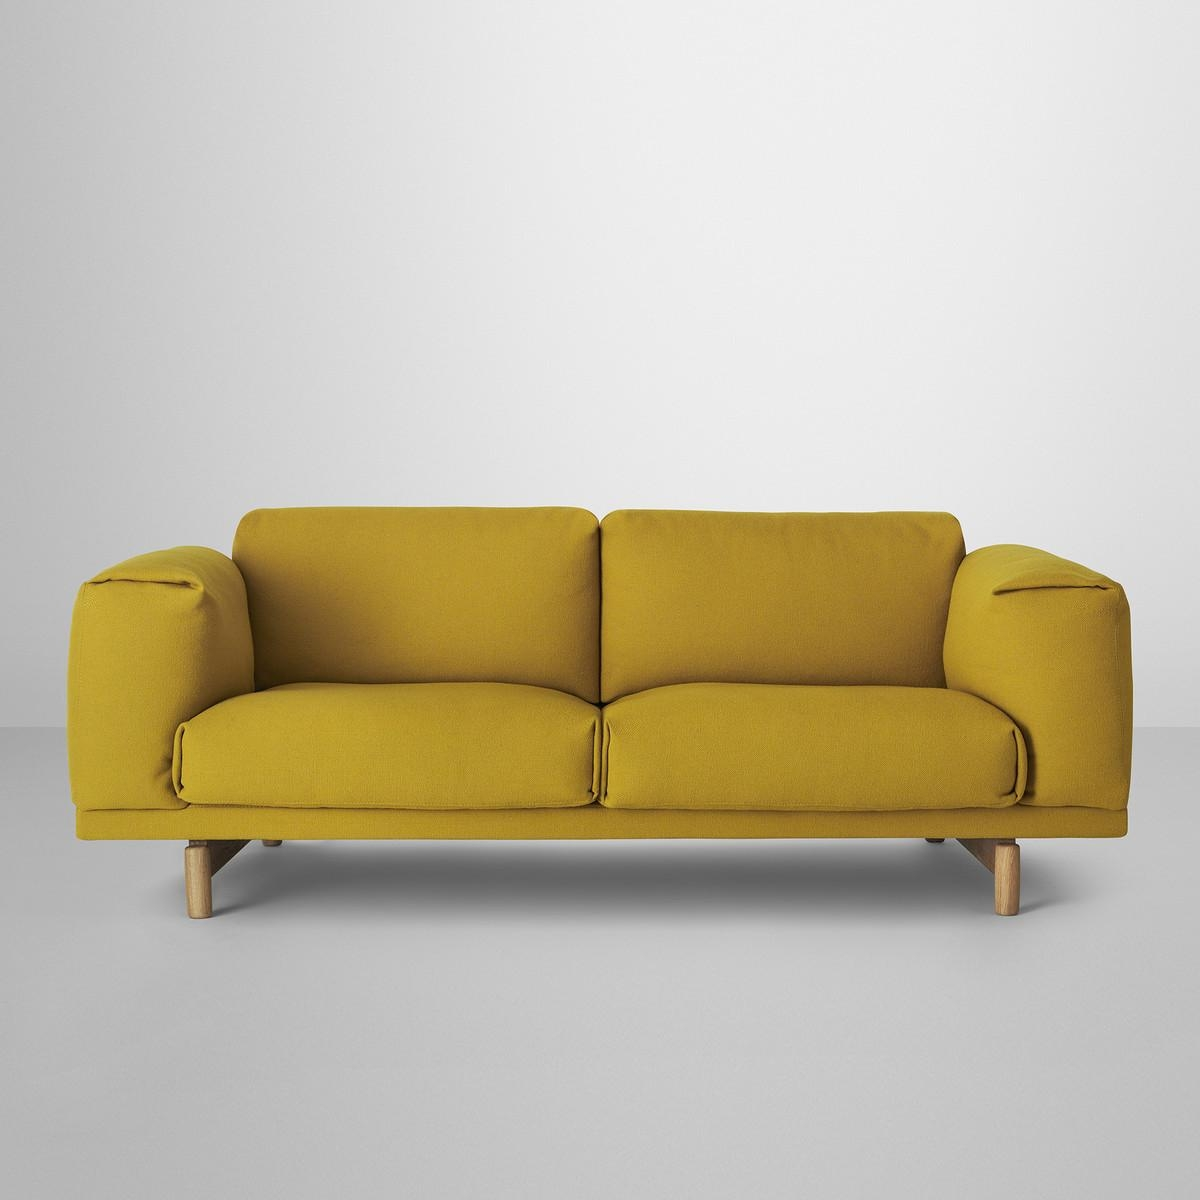 Rest Sofa 2 Seater | Muuto | Connox Shop Within Yellow Sofa Chairs (Image 14 of 20)